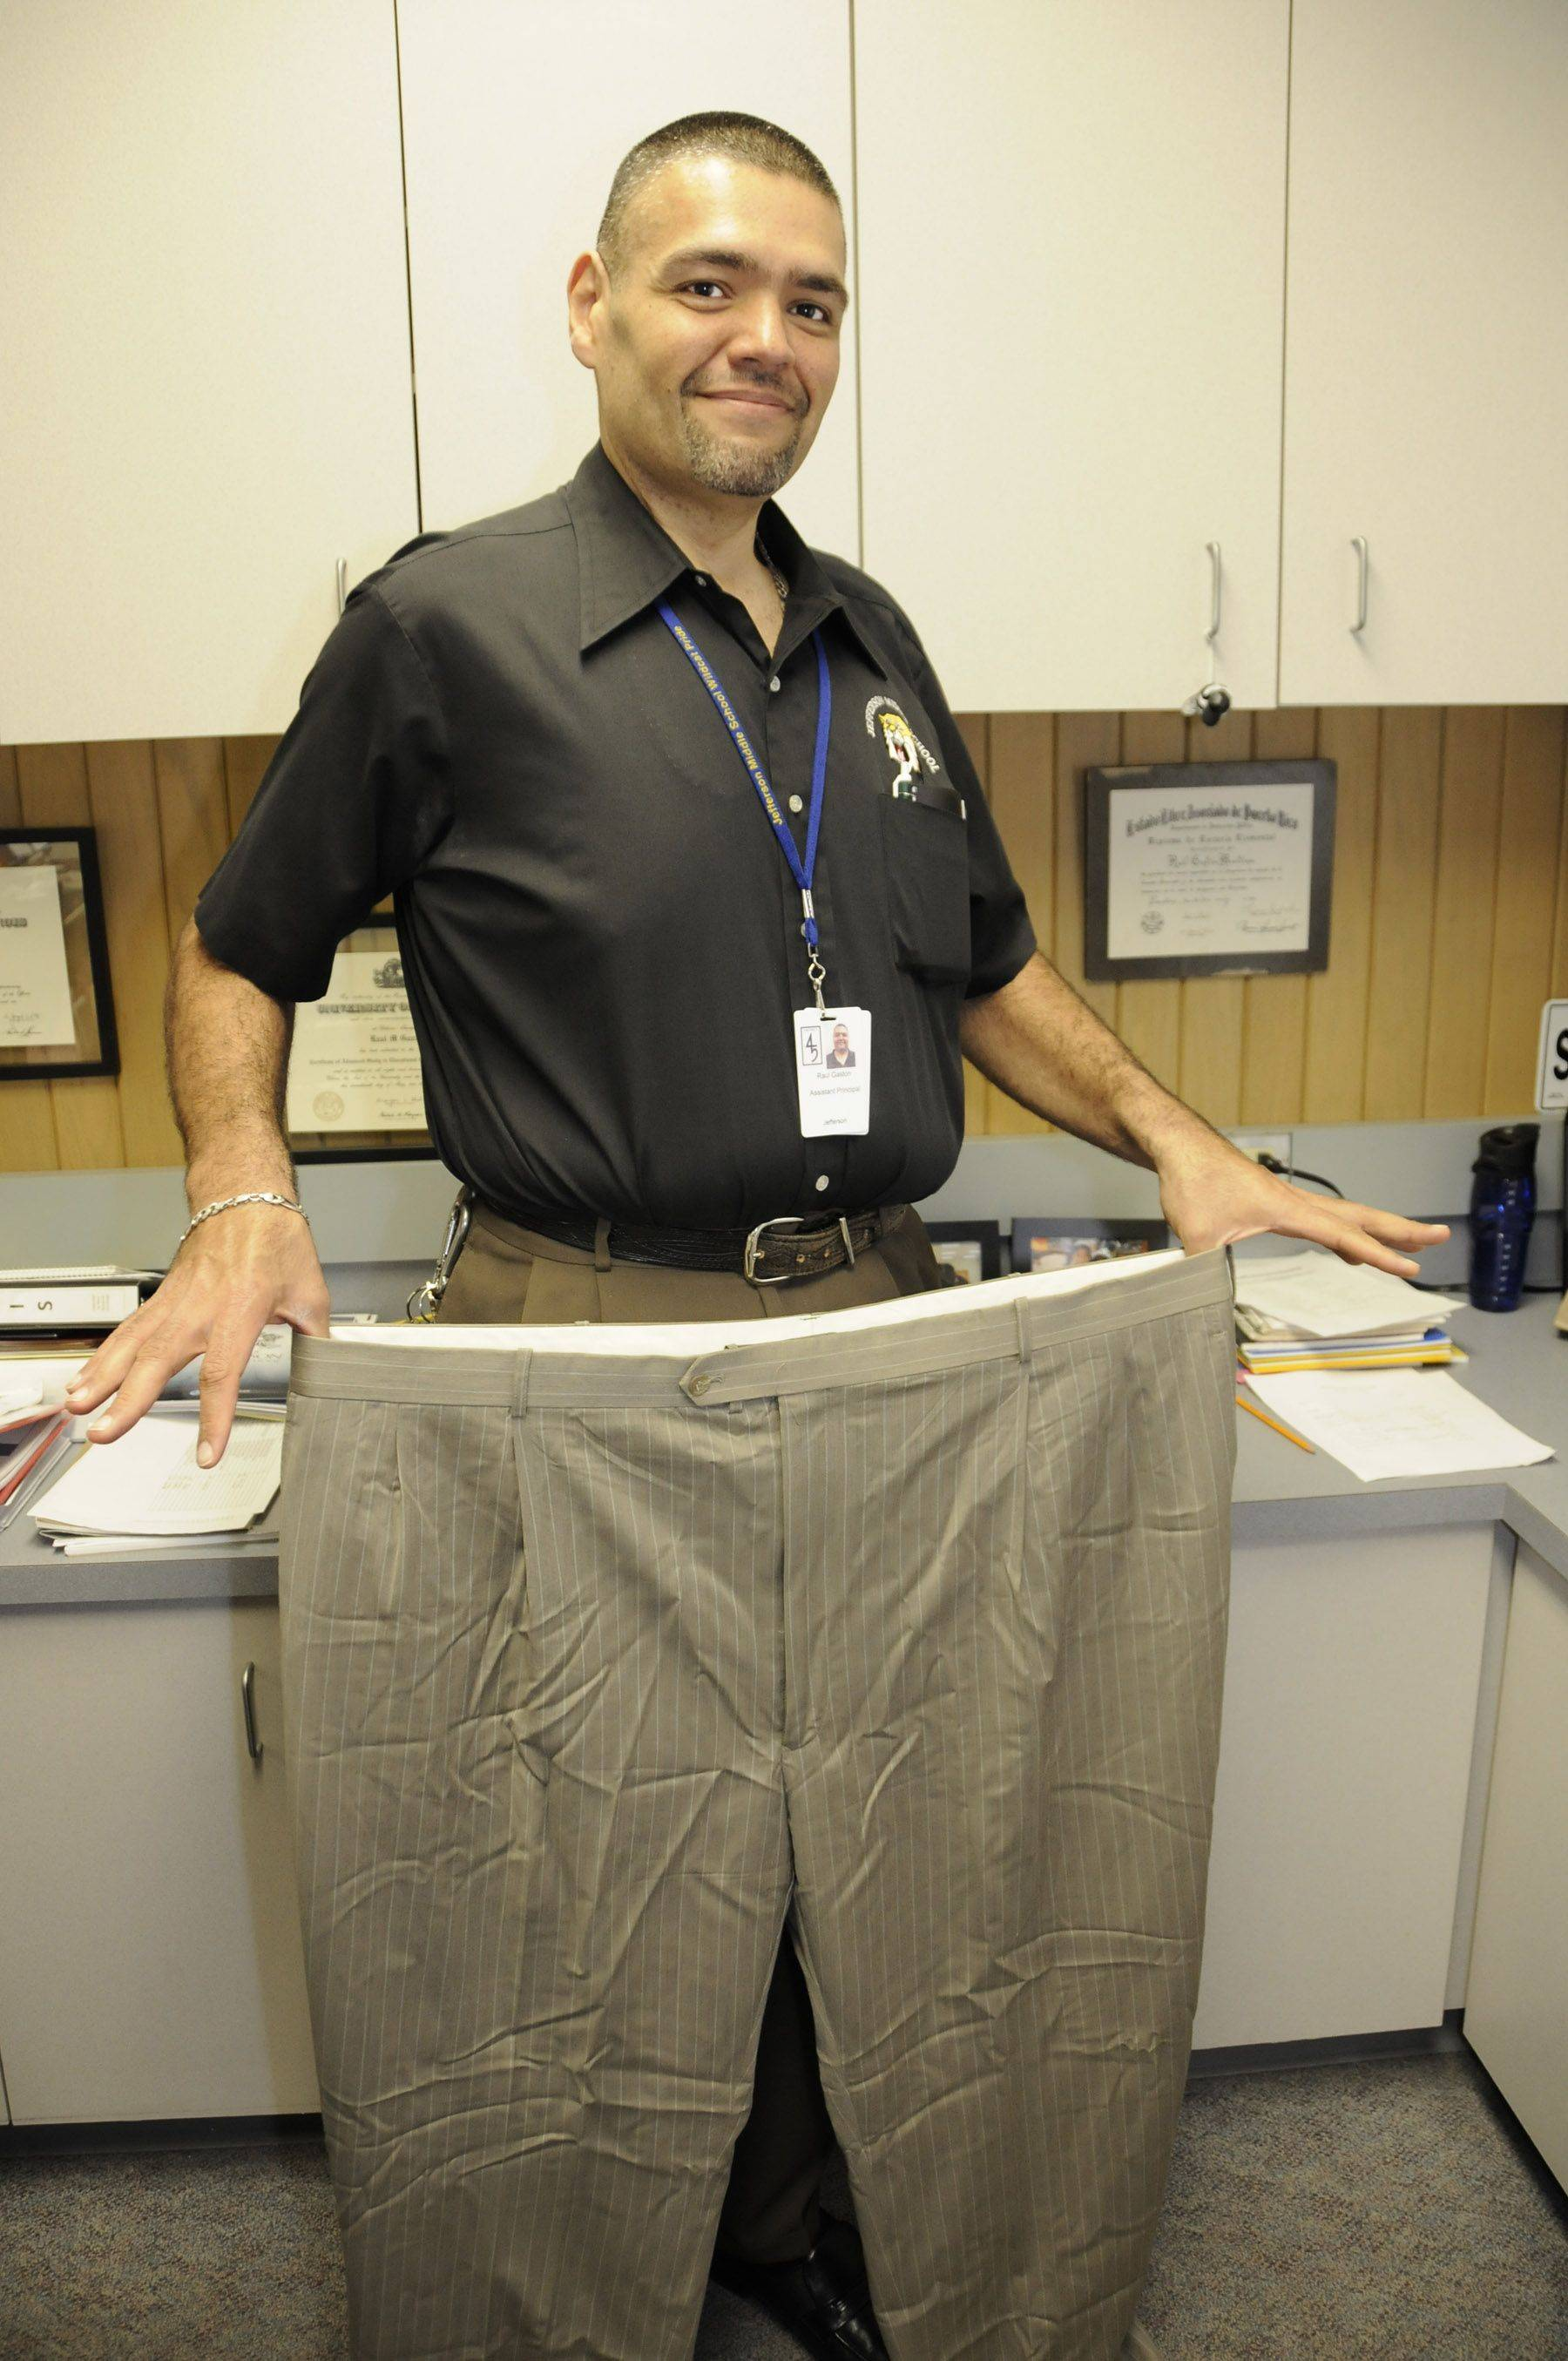 Ra�l Gast�n, assistant principal at Jefferson Middle School in Villa Park, shows the size 60 pants he used to wear before he lost 180 pounds in less than a year.